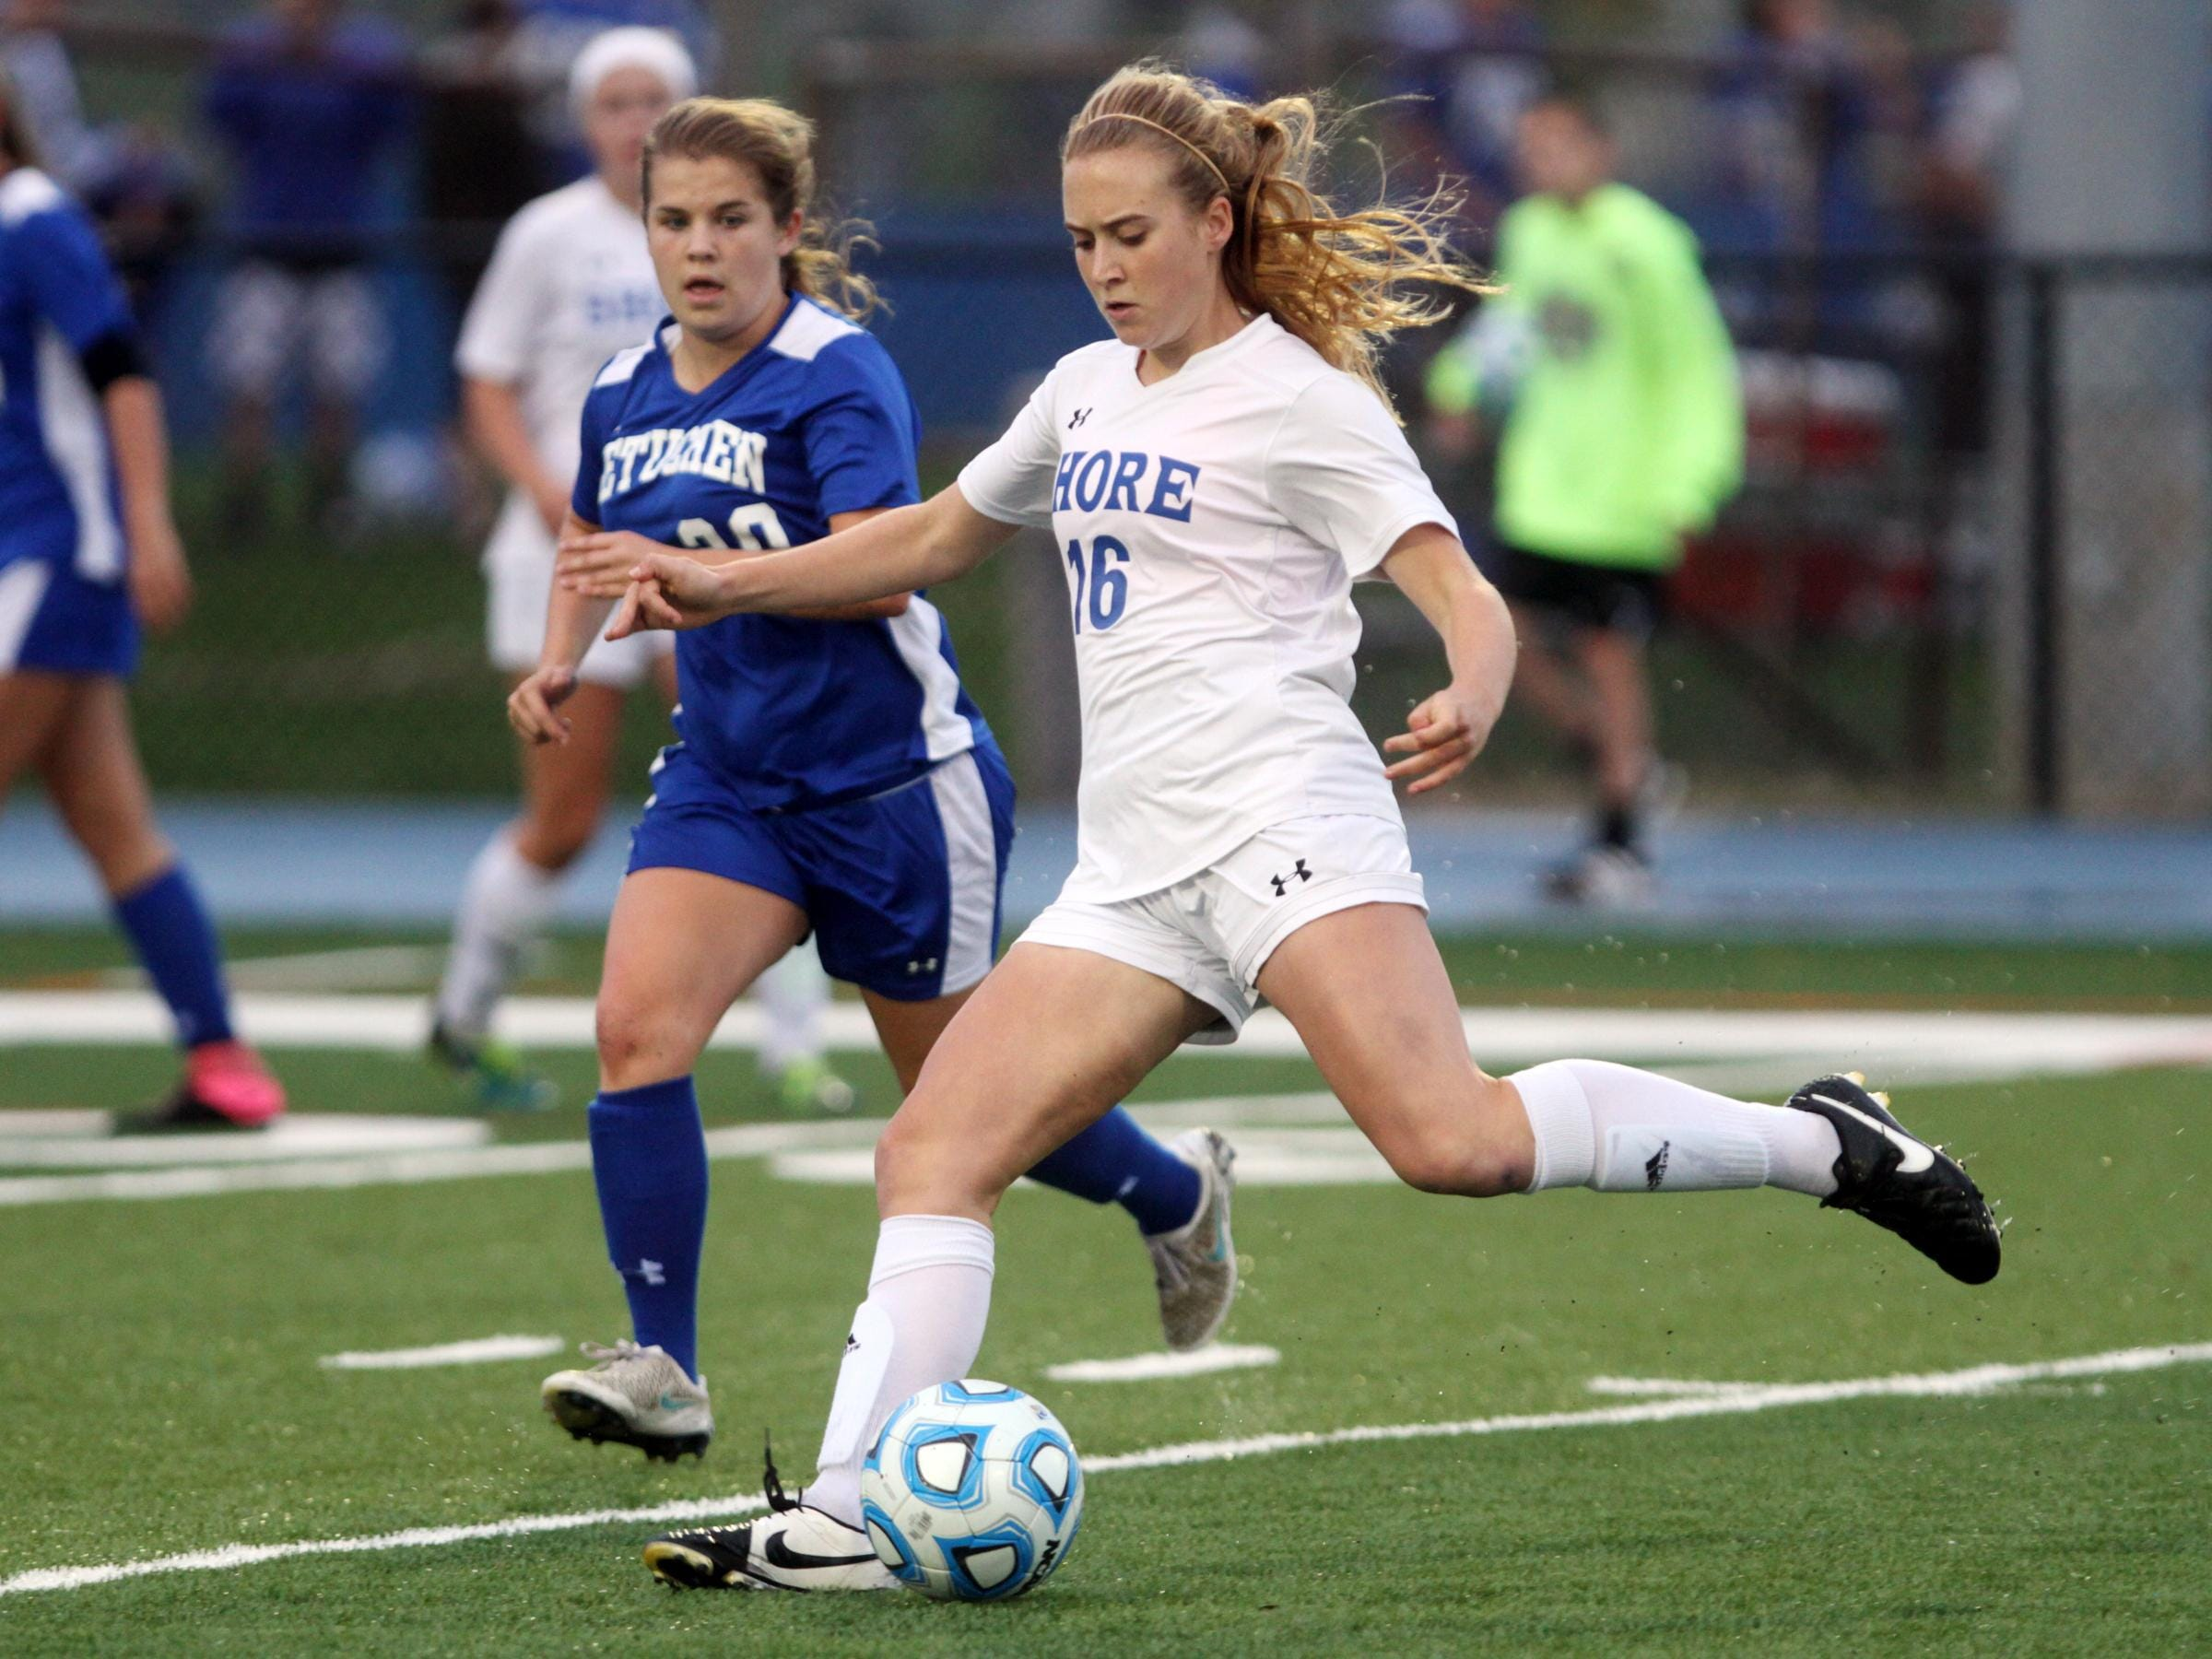 Shore Regional's Jessica Egan boots the ball in front of Metuchen's Katharine Chura during the Central Group I girls soccer sectional final, Thursday, November 12, 2015, in West Long Branch.